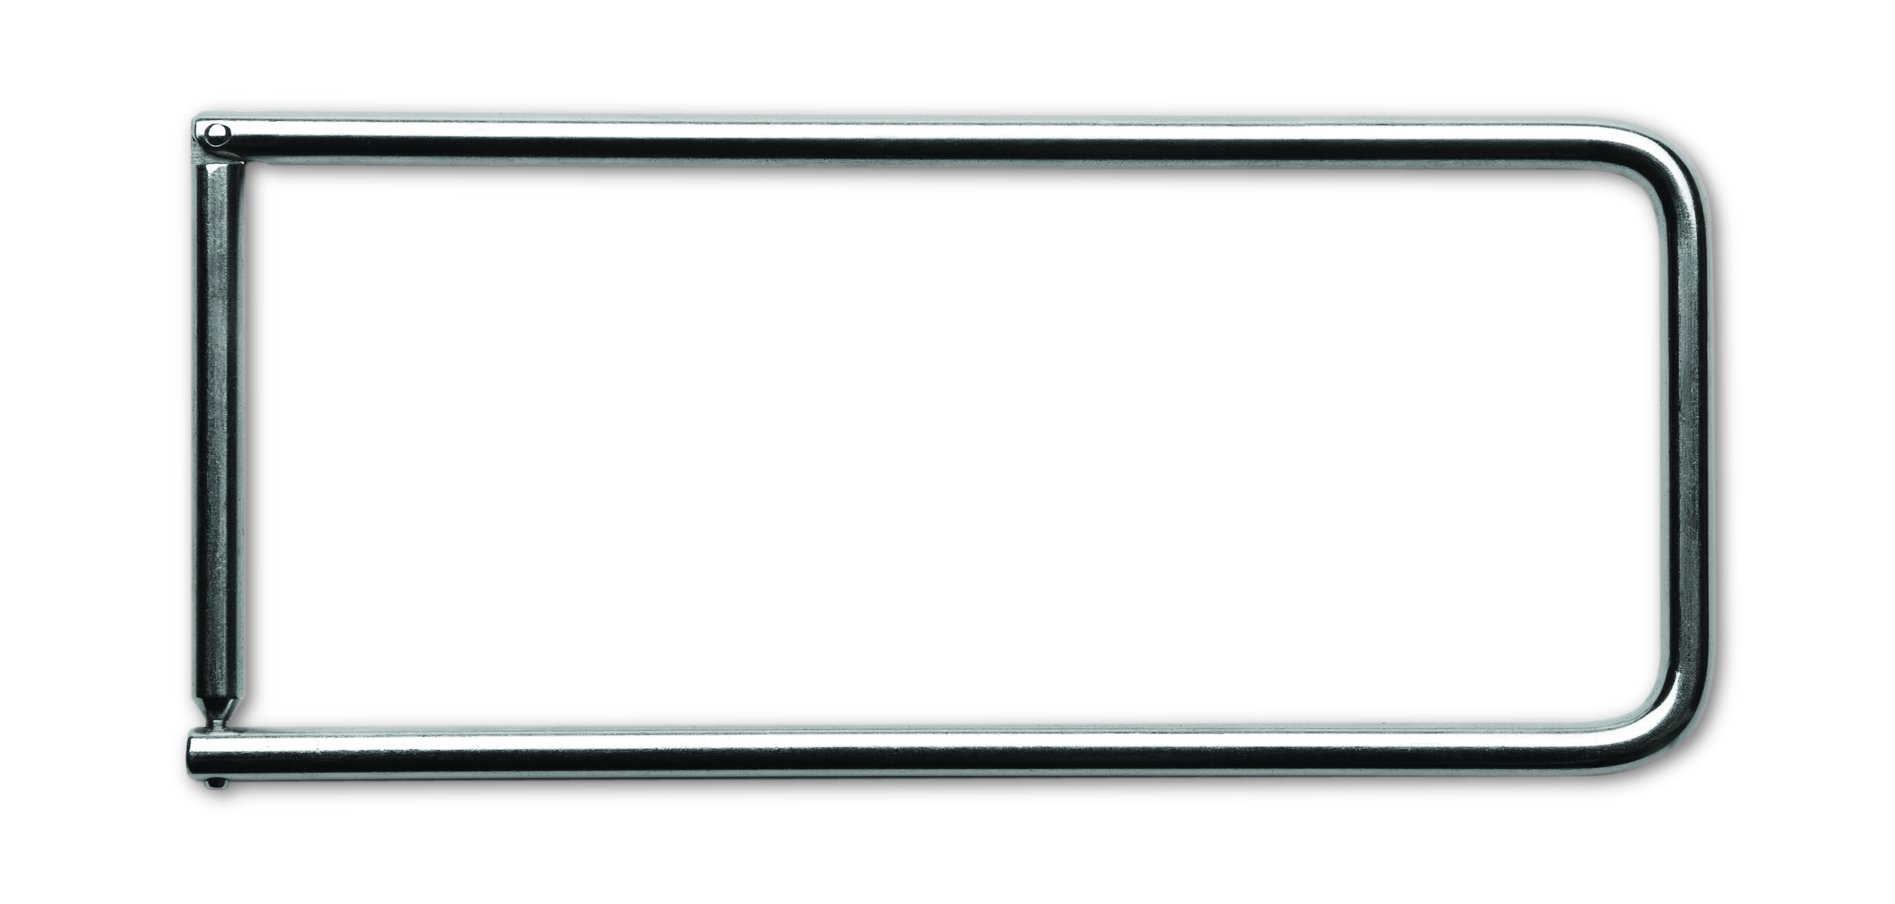 Key Surgical IS-32508 Instrument Stringer, Pull-To-Open, Stainless Steel, 8'' x 2.5''